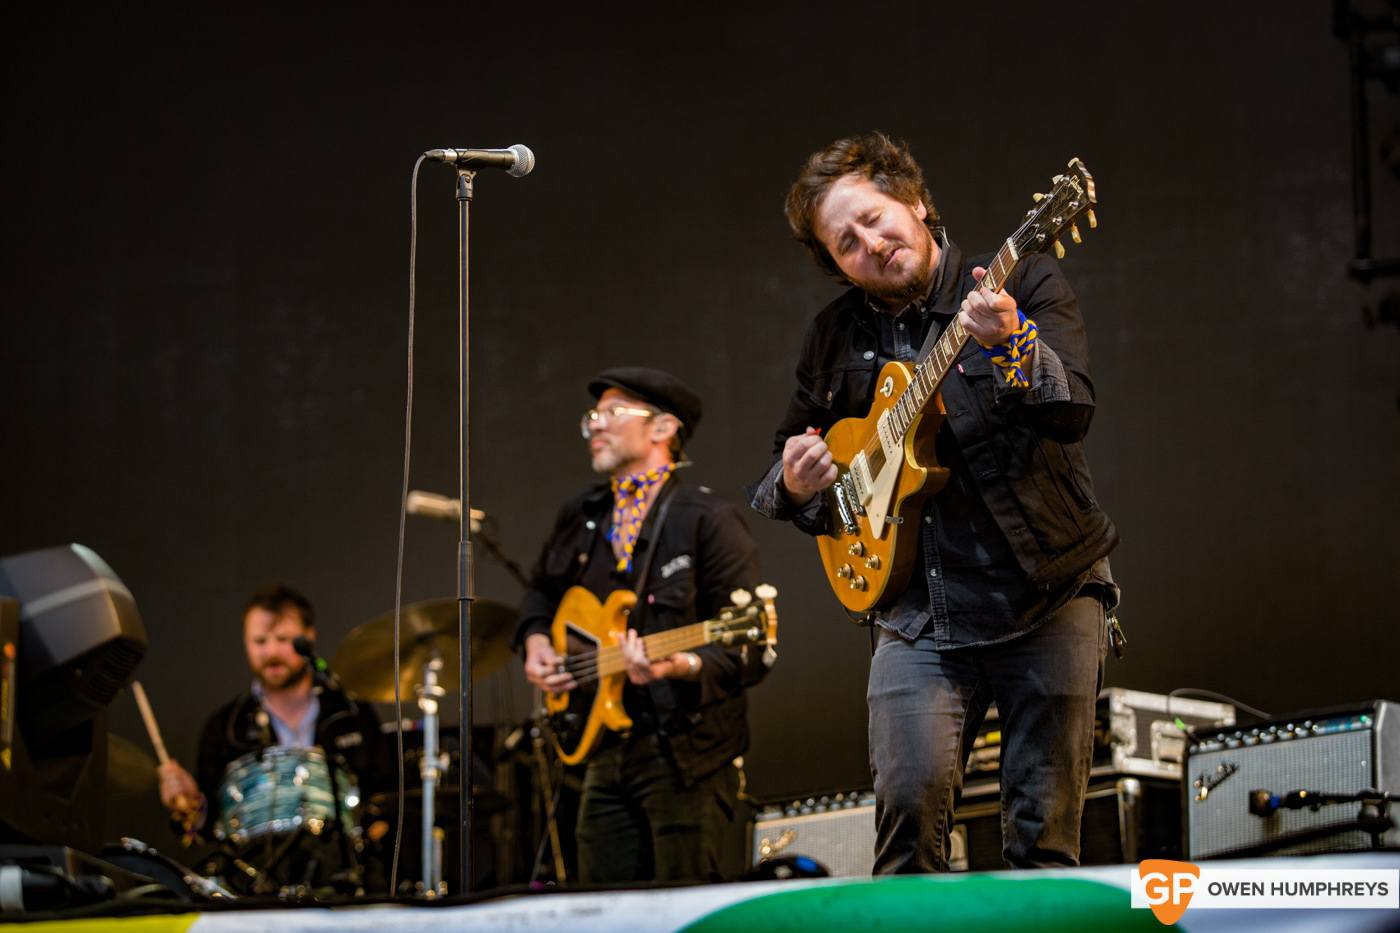 Nathaniel Rateliff and the Night Sweats at Electric Picnic by Owen Humphreys